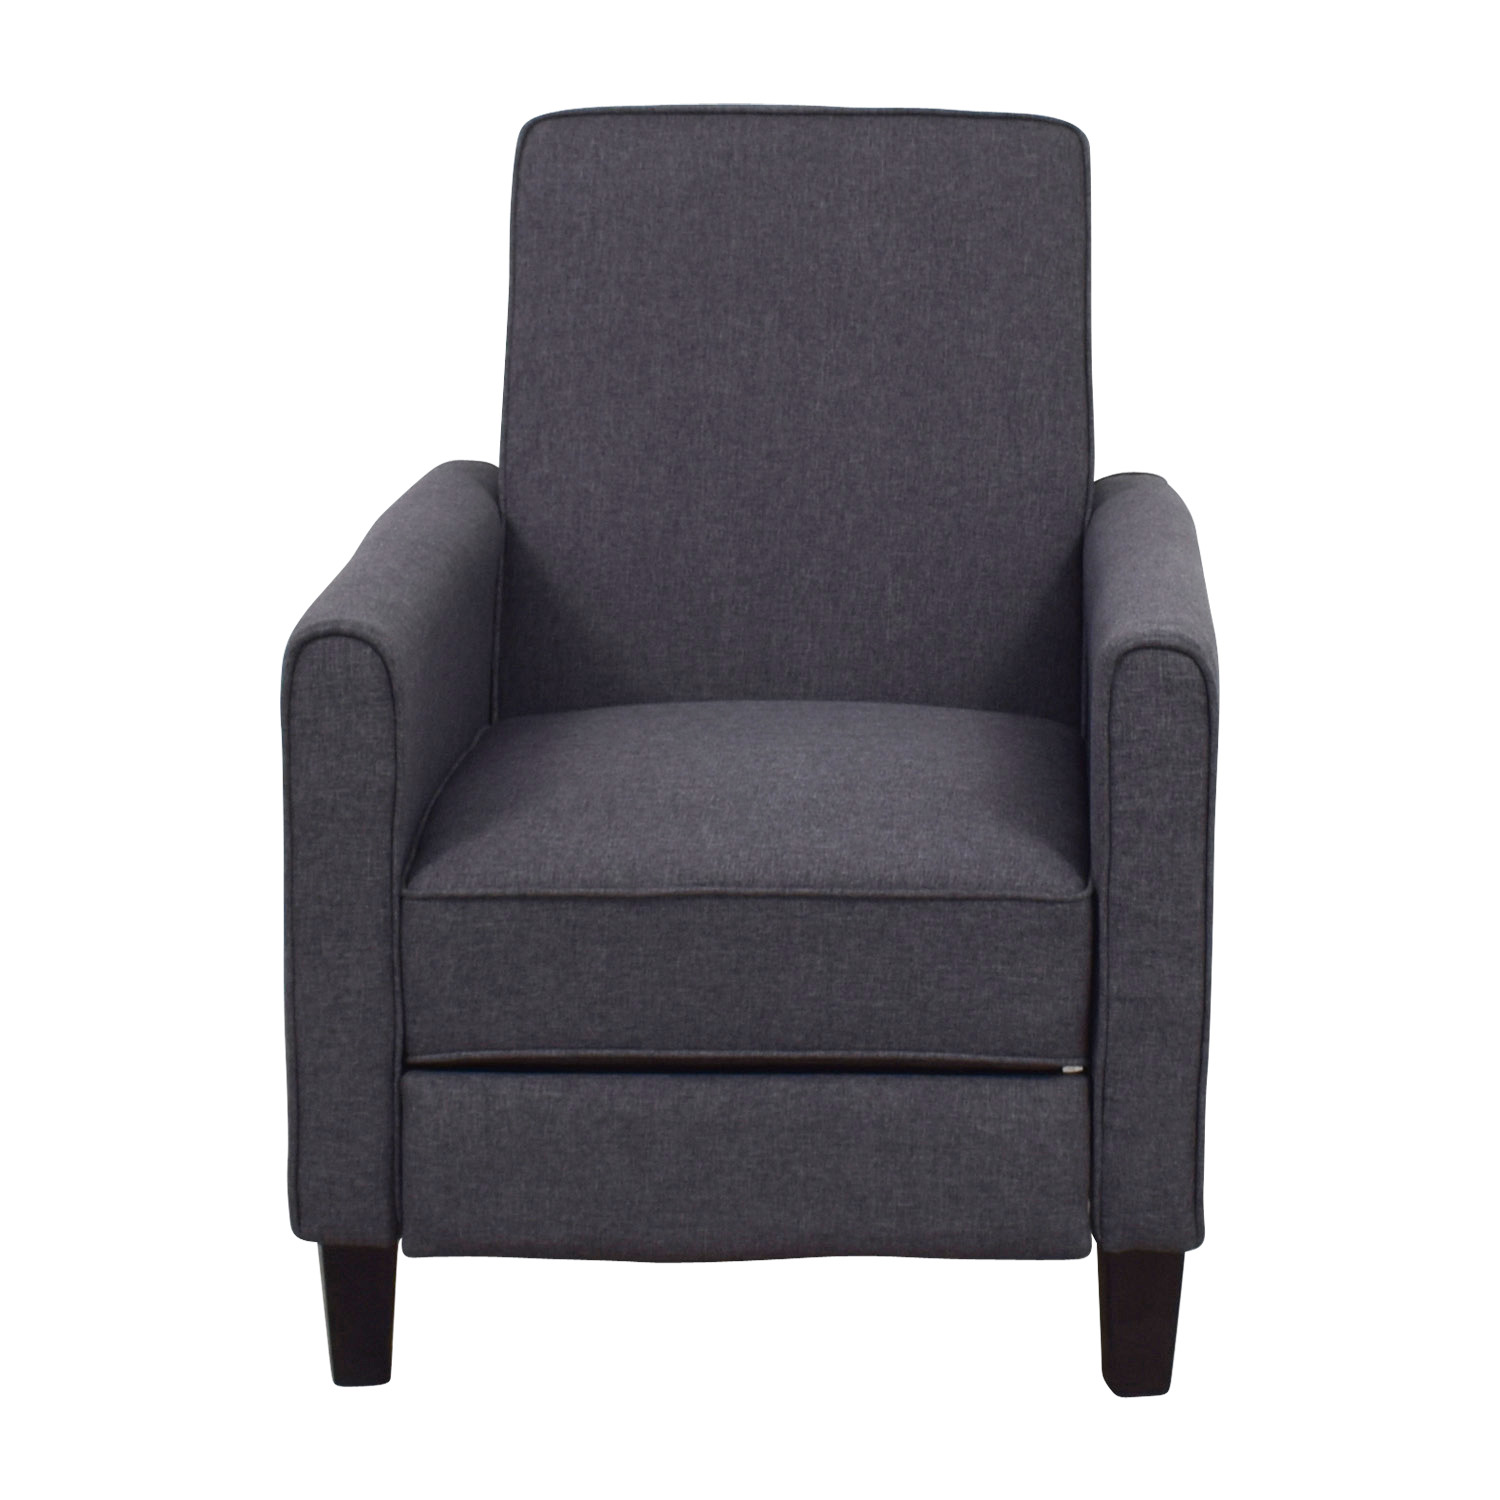 shop Christopher Knight Home Darvis Grey Recliner Club Chair Christopher Knight Home